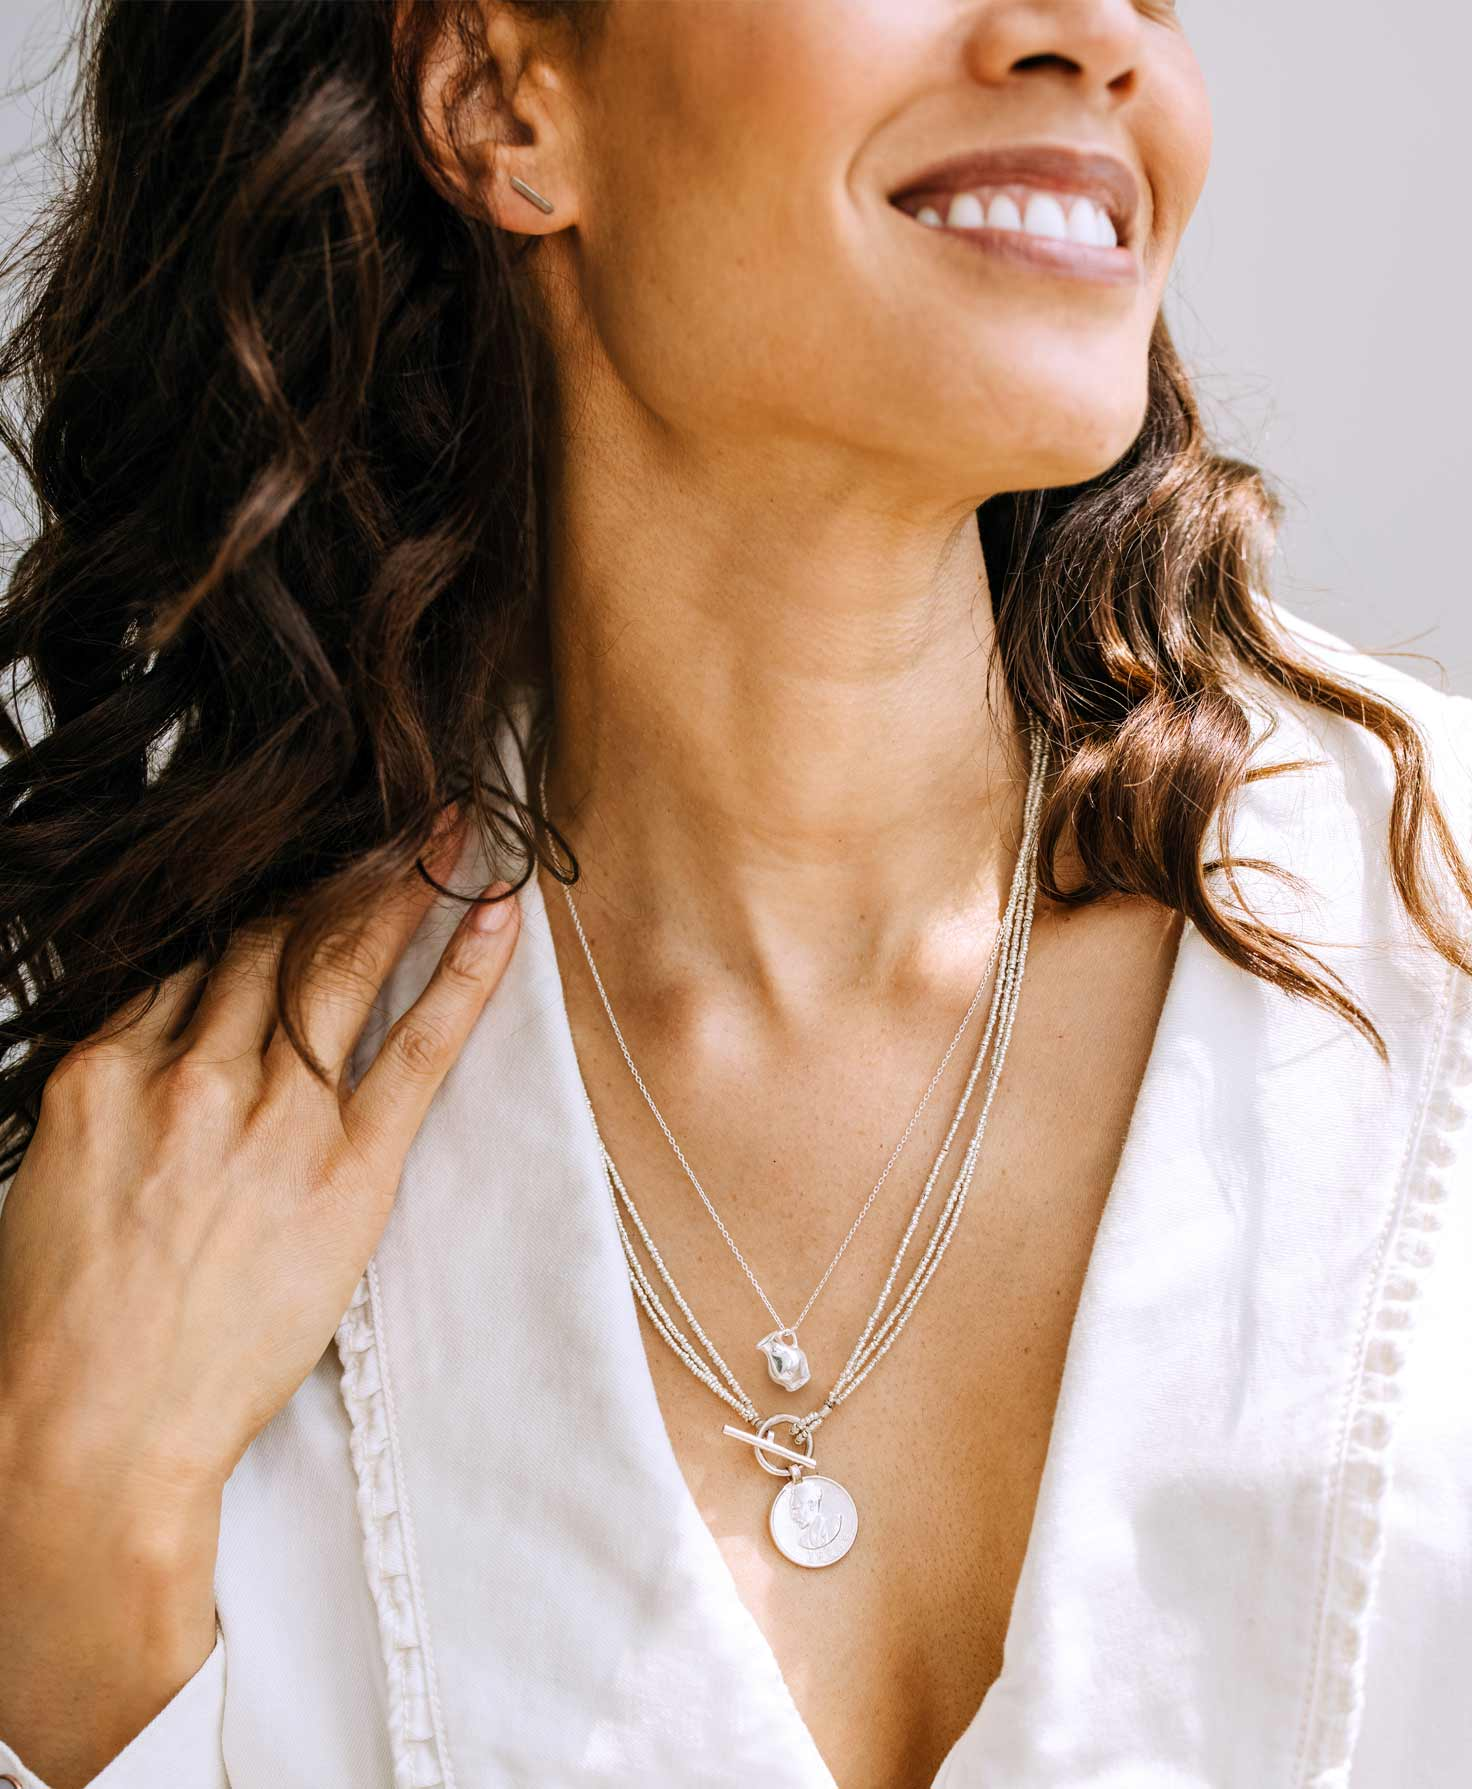 A model wears the dainty Silver Bar Studs. She also wears two silver metallic necklaces layered together: the Fount Necklace and the Artillery Treasure Necklace.